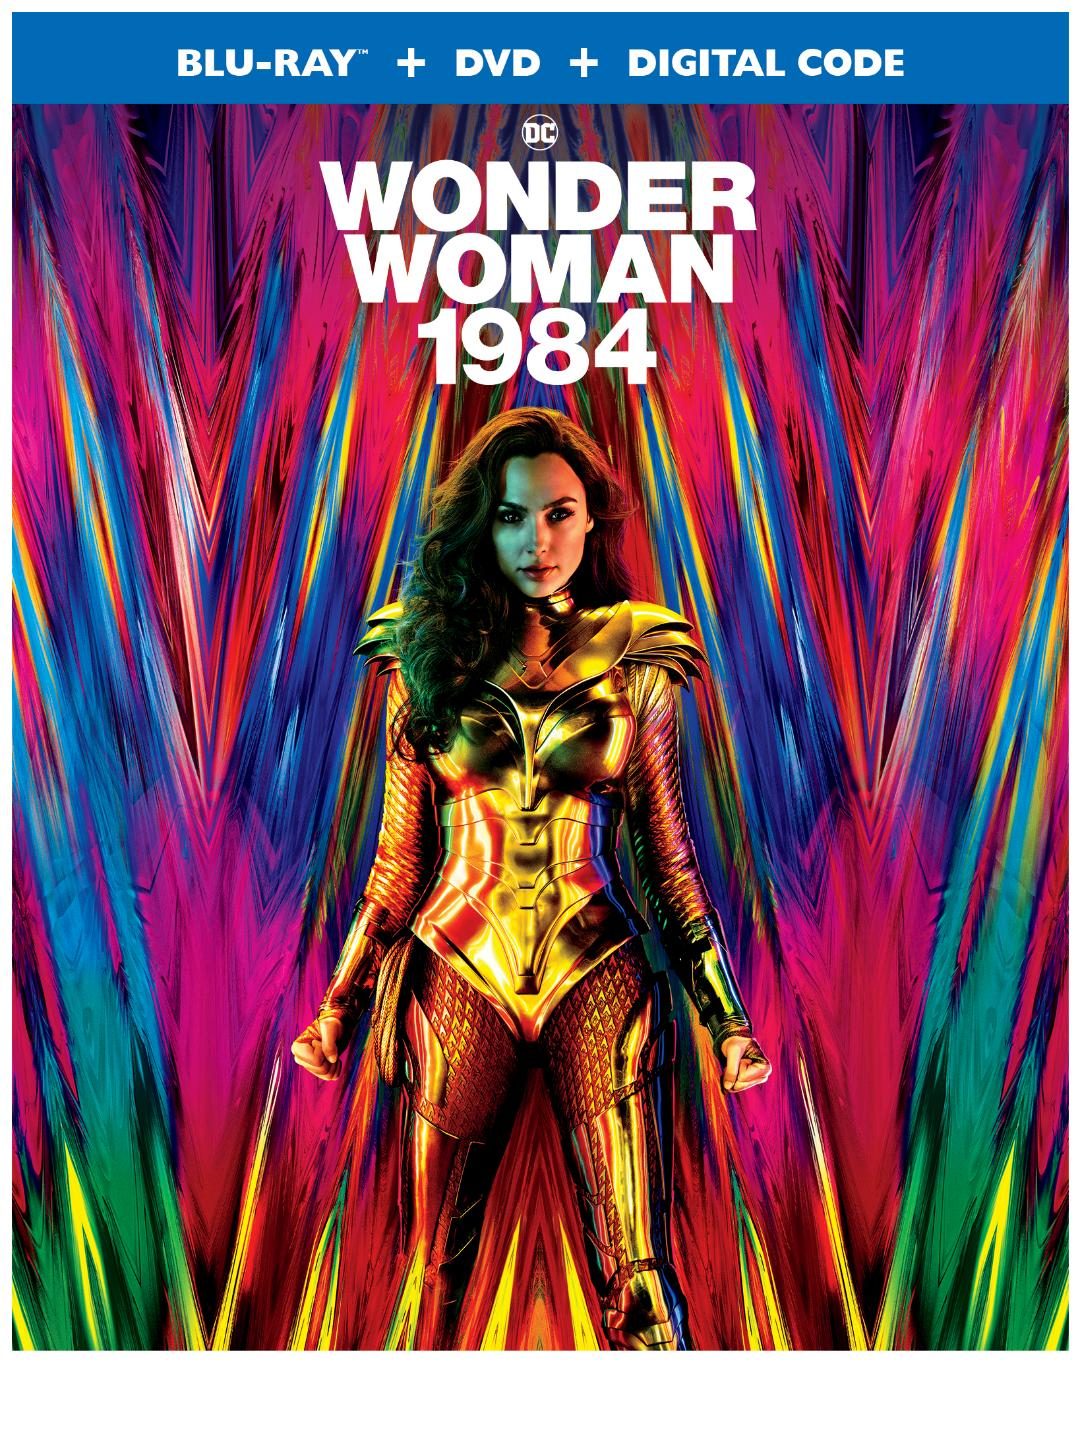 Wonder Woman 1984 Blu-ray Review